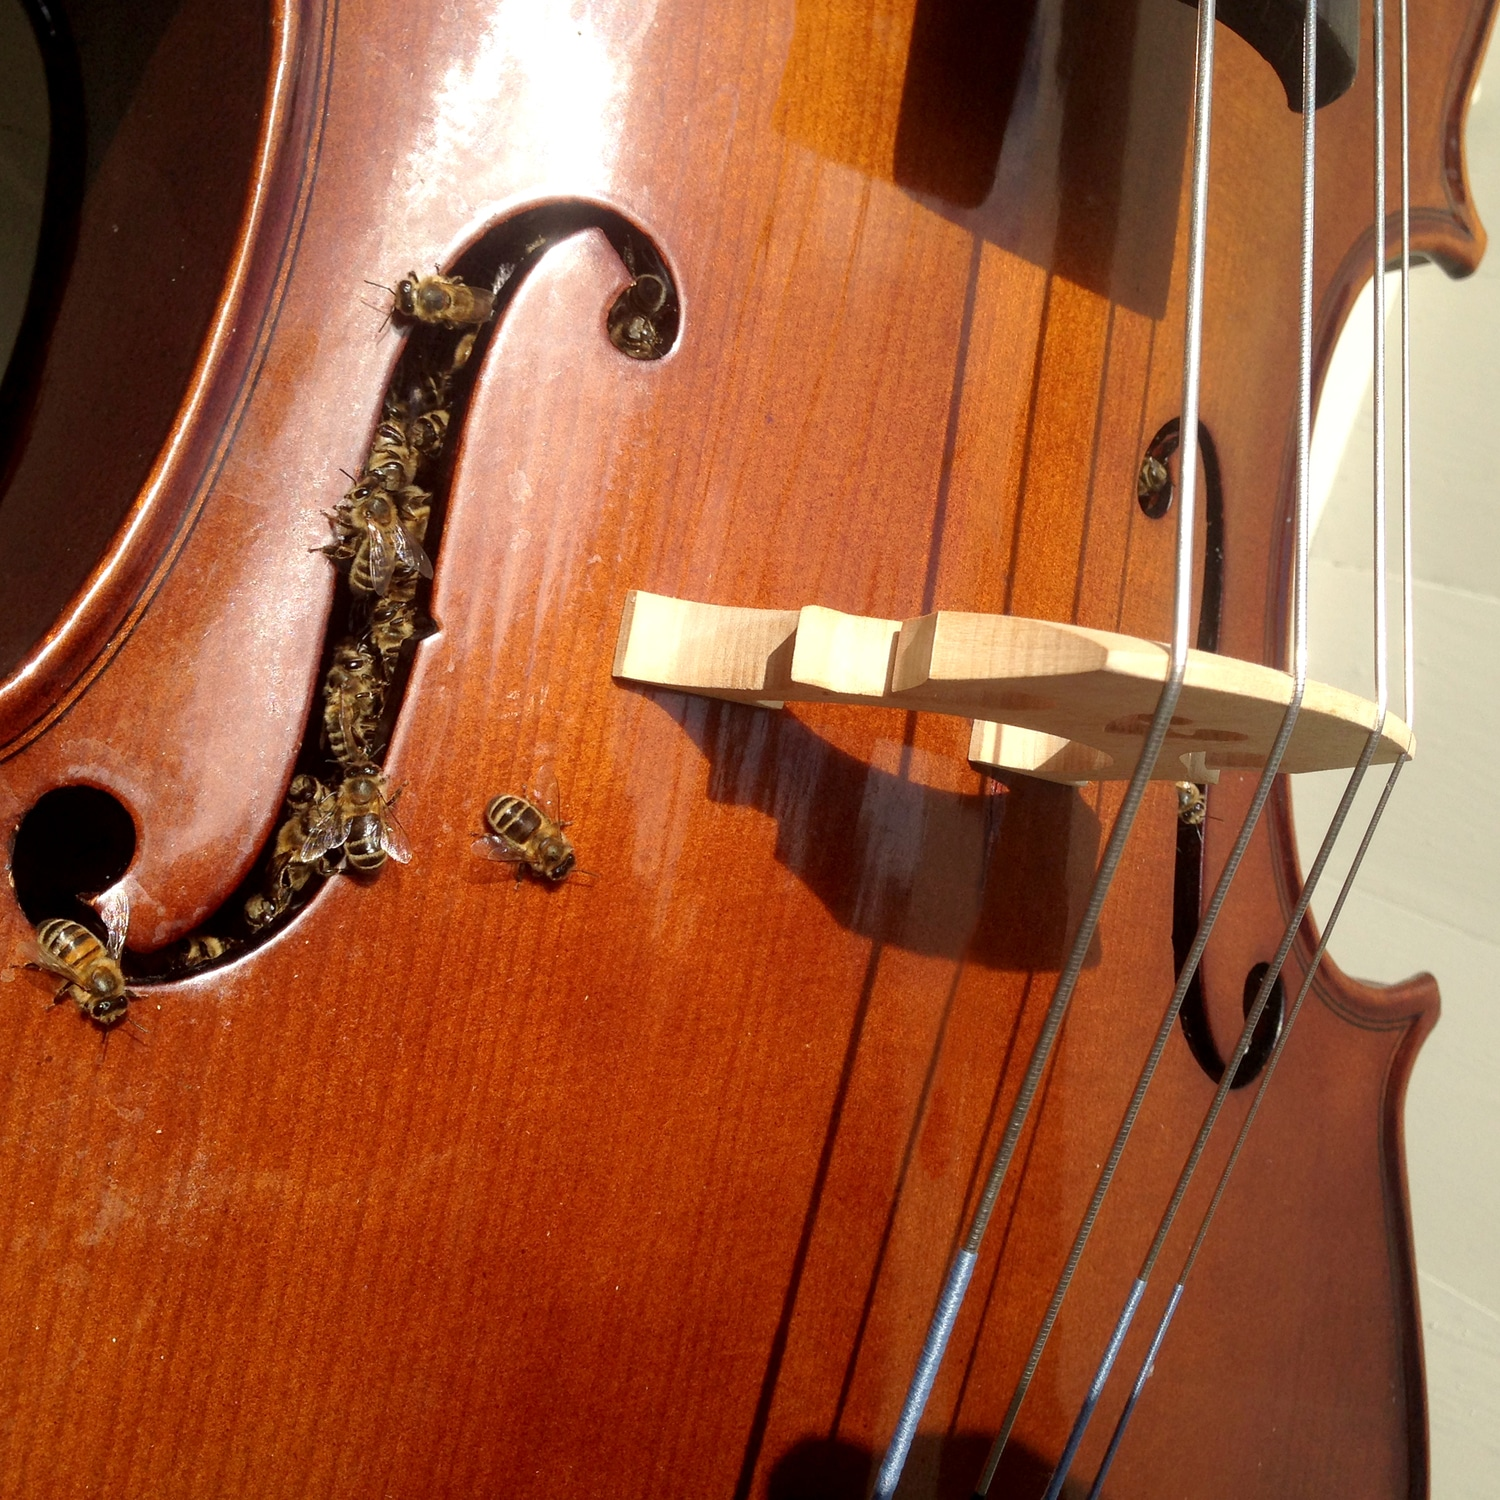 Help! My cello is full of bees